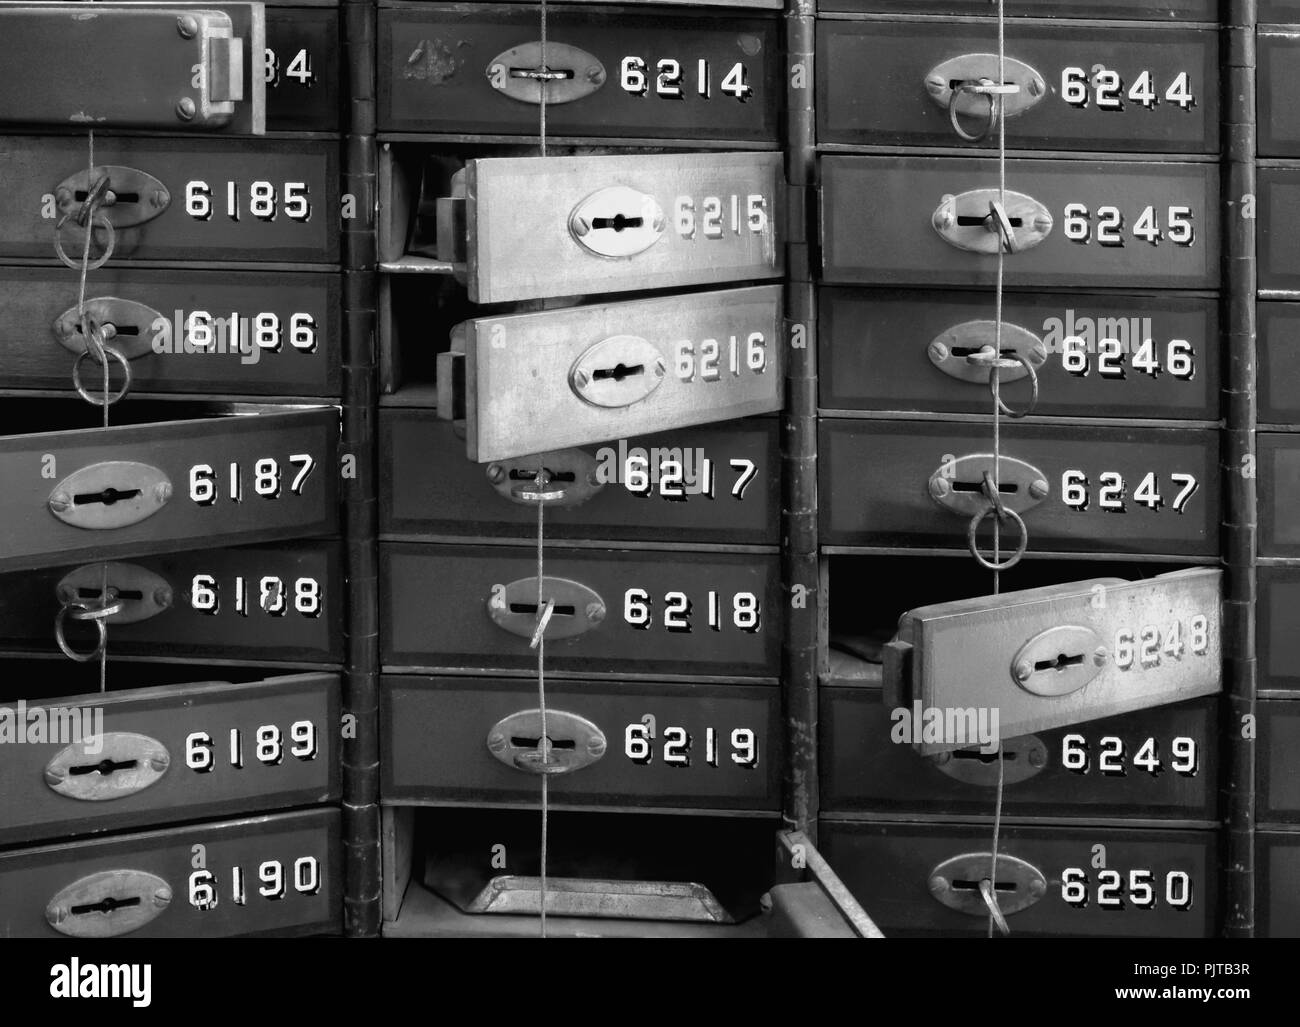 Lockers of a bank in the Technical Museum in Magdeburg Stock Photo